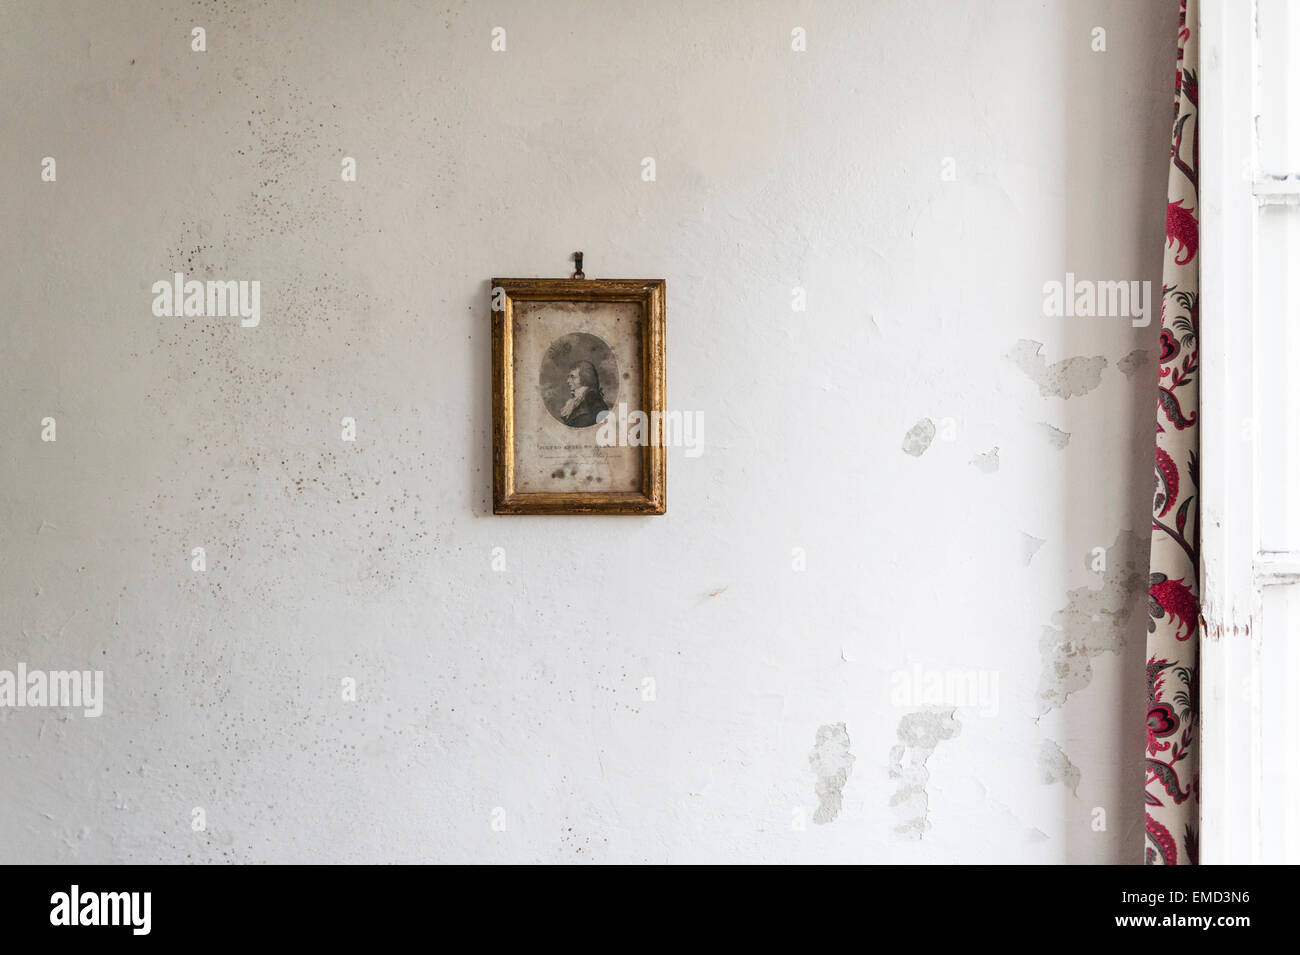 Italy. An old and badly foxed print in a gilt frame hanging on a damp and crumbling wall - Stock Image